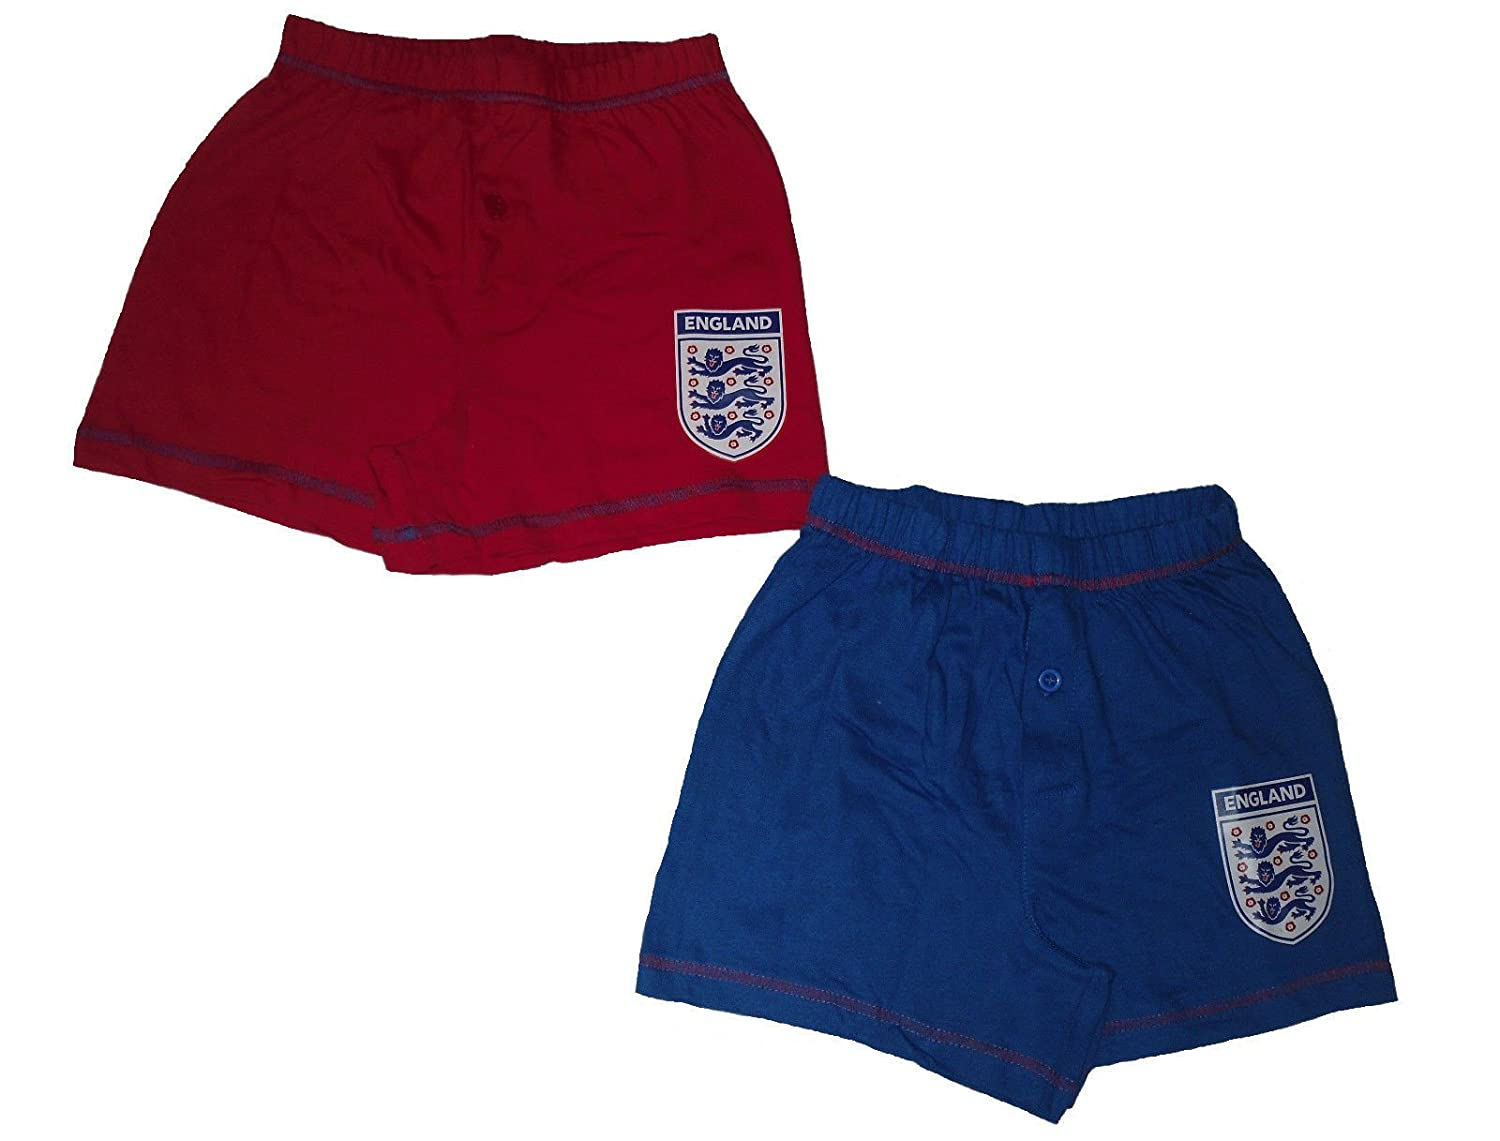 BOYS 2 PACK BOXER SHORTS UNDERWEAR ENGLAND